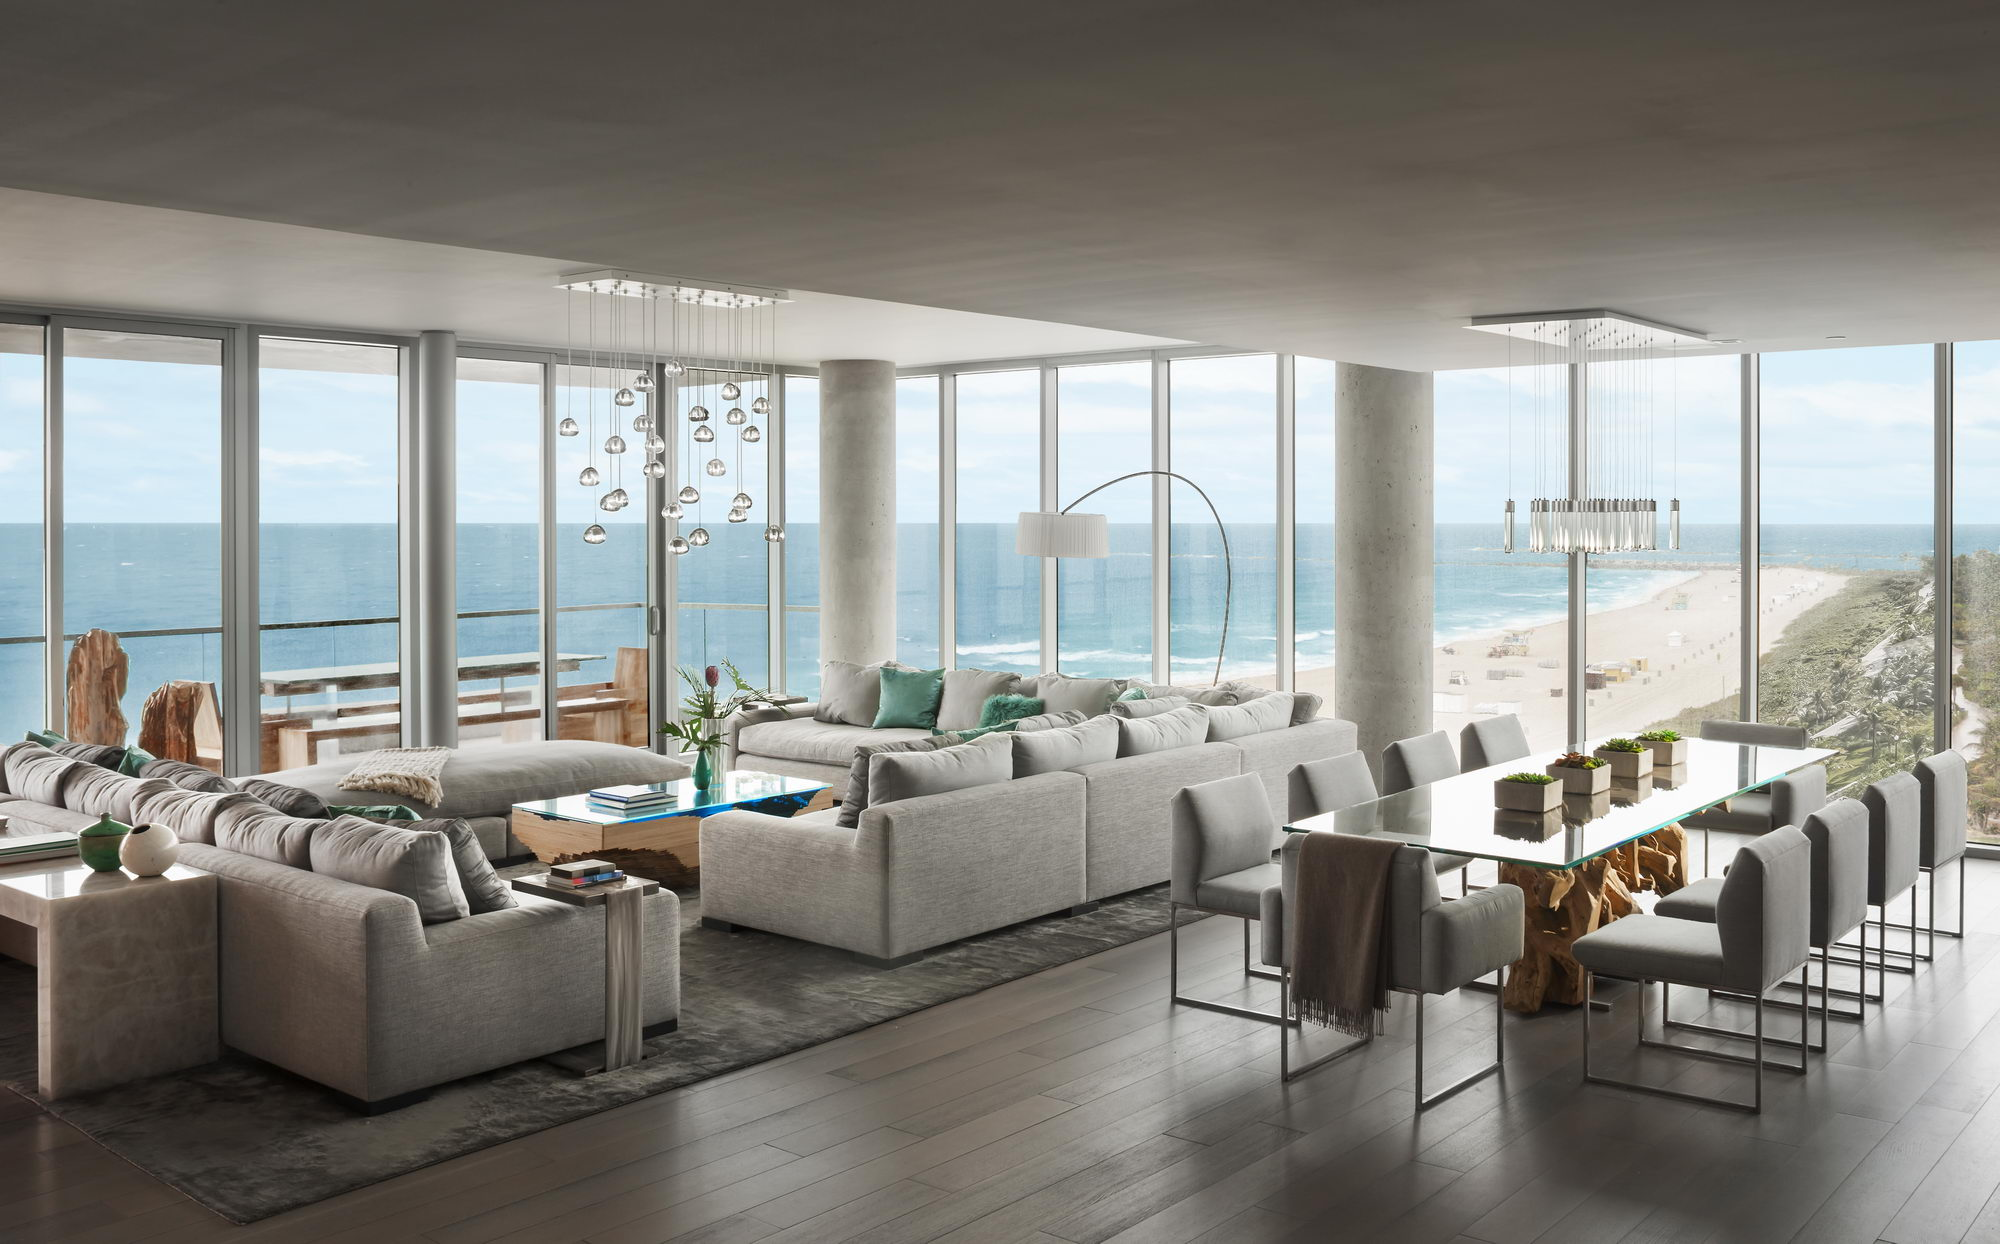 Ocean penthouse beach view south beach Miami Florida contemporary apartment great room living room family room dining room picture windows beach